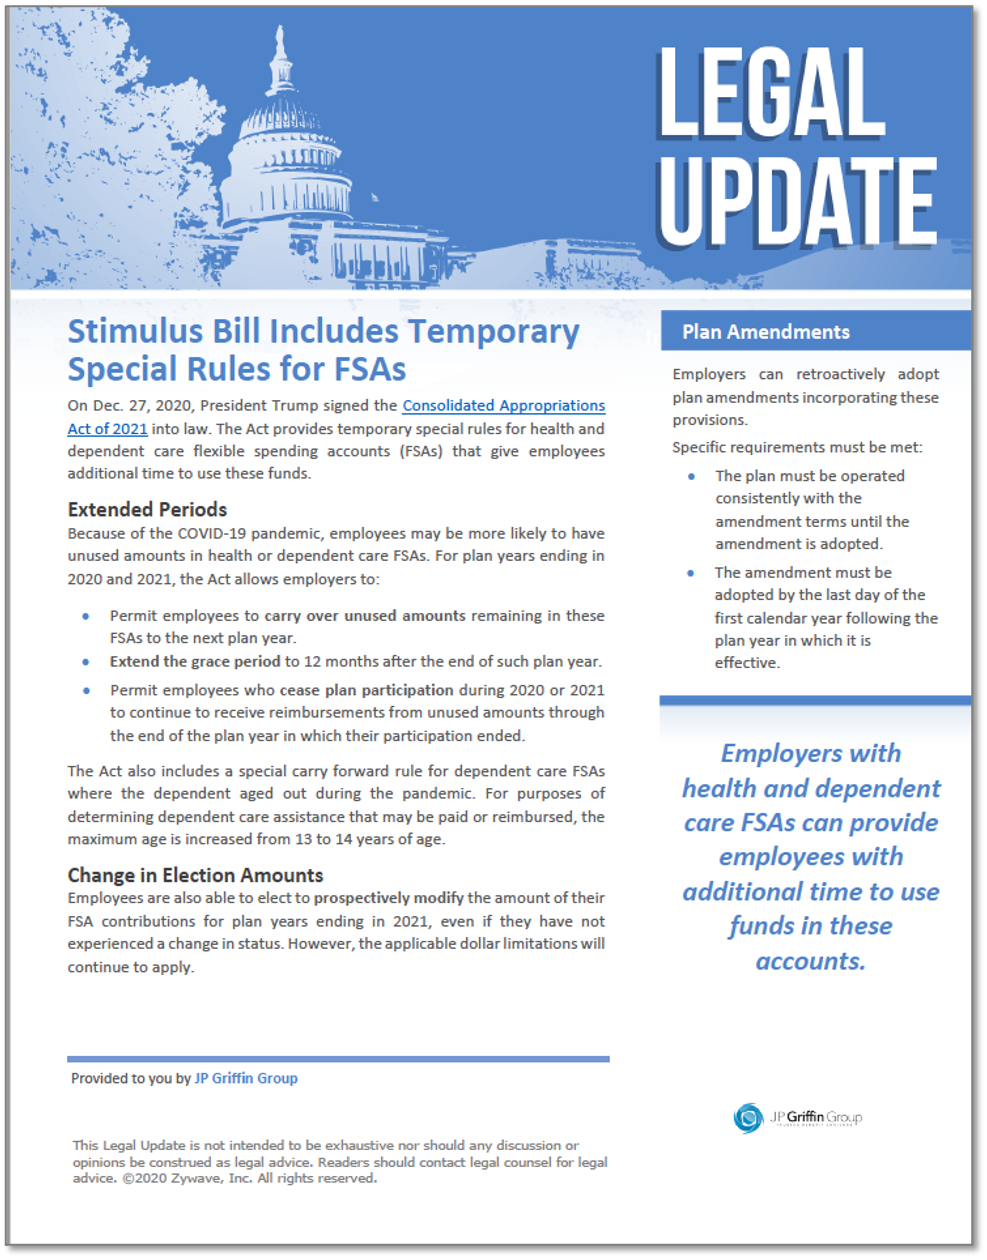 Stimulus Bill Includes Temporary Special Rules for Health and Dependent Care FSAs